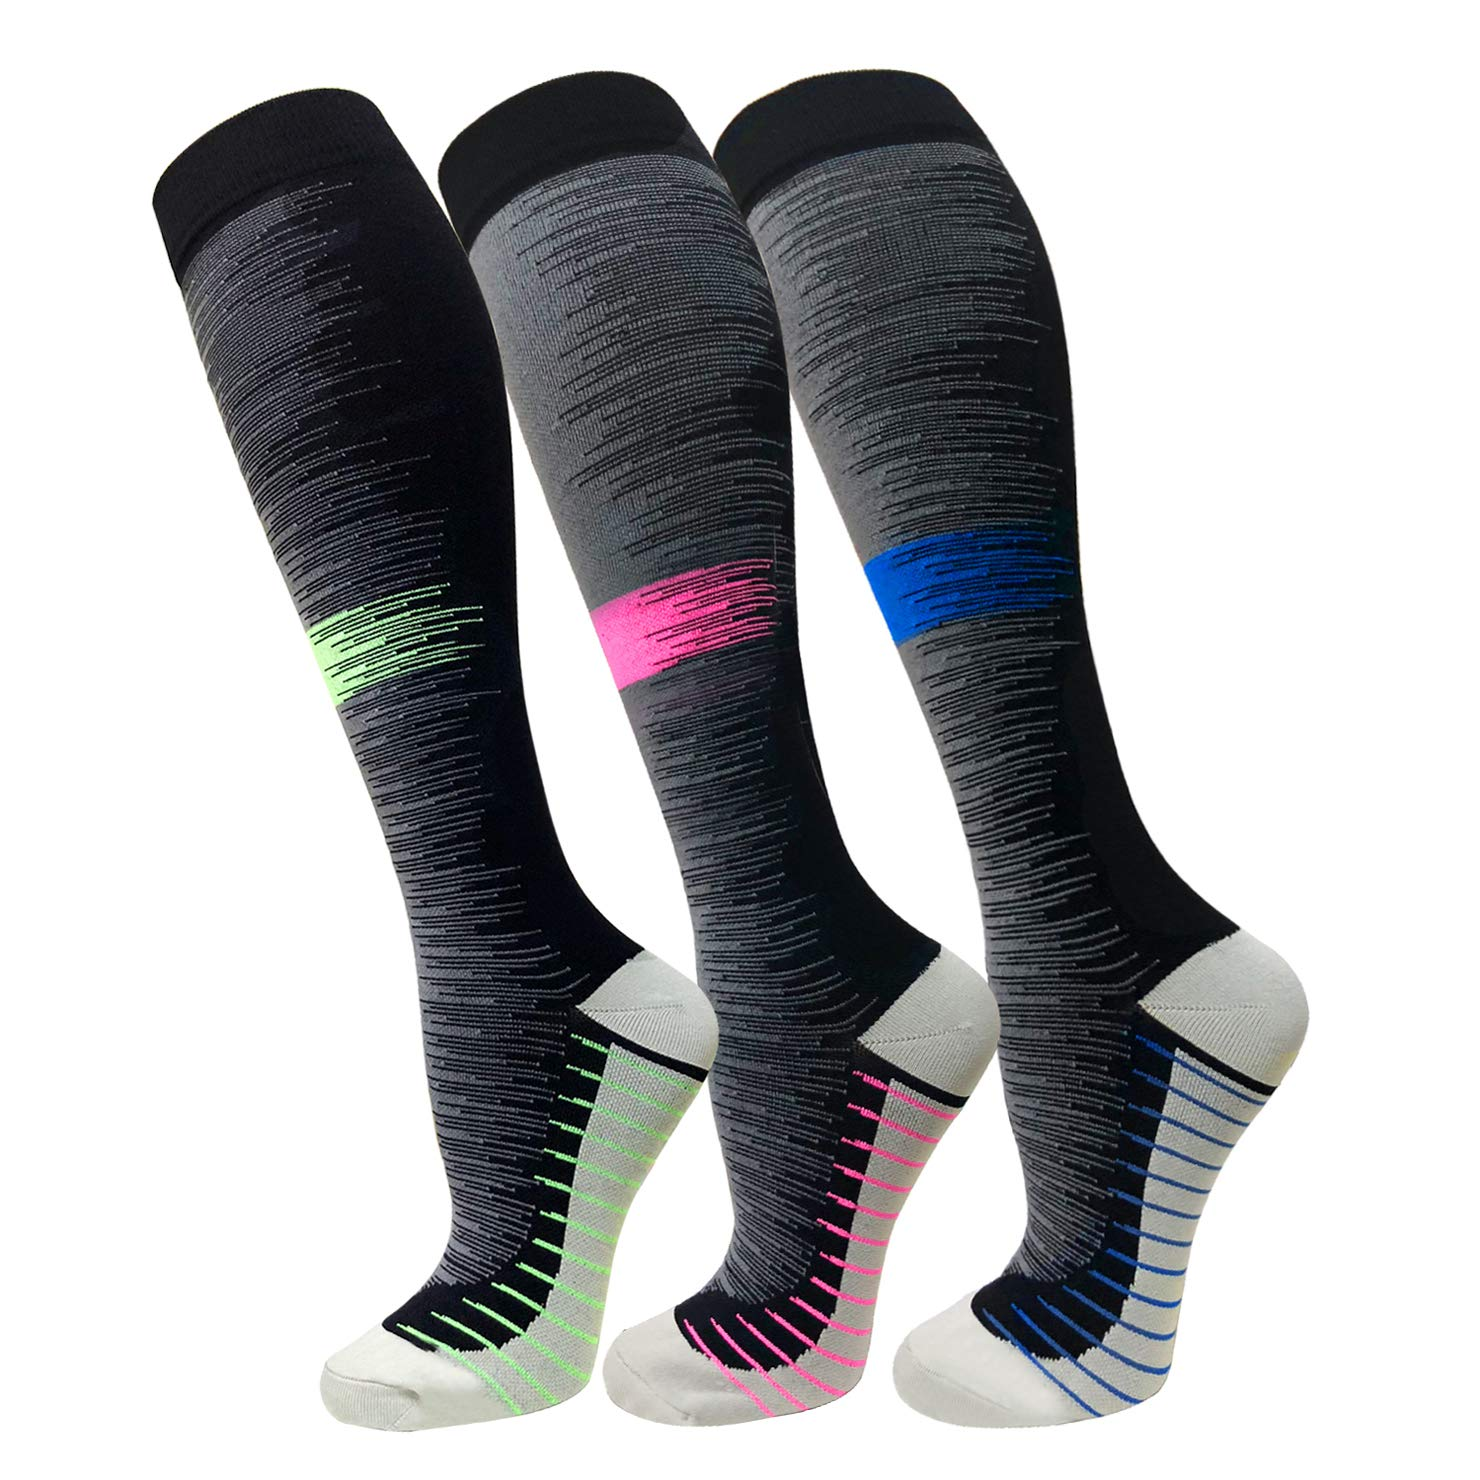 Compression Socks For Men & Women(3 Pairs)- Best For Running,Athletic,Medical,Pregnancy and Travel -15-20mmHg (S/M, Multicoloured 3)